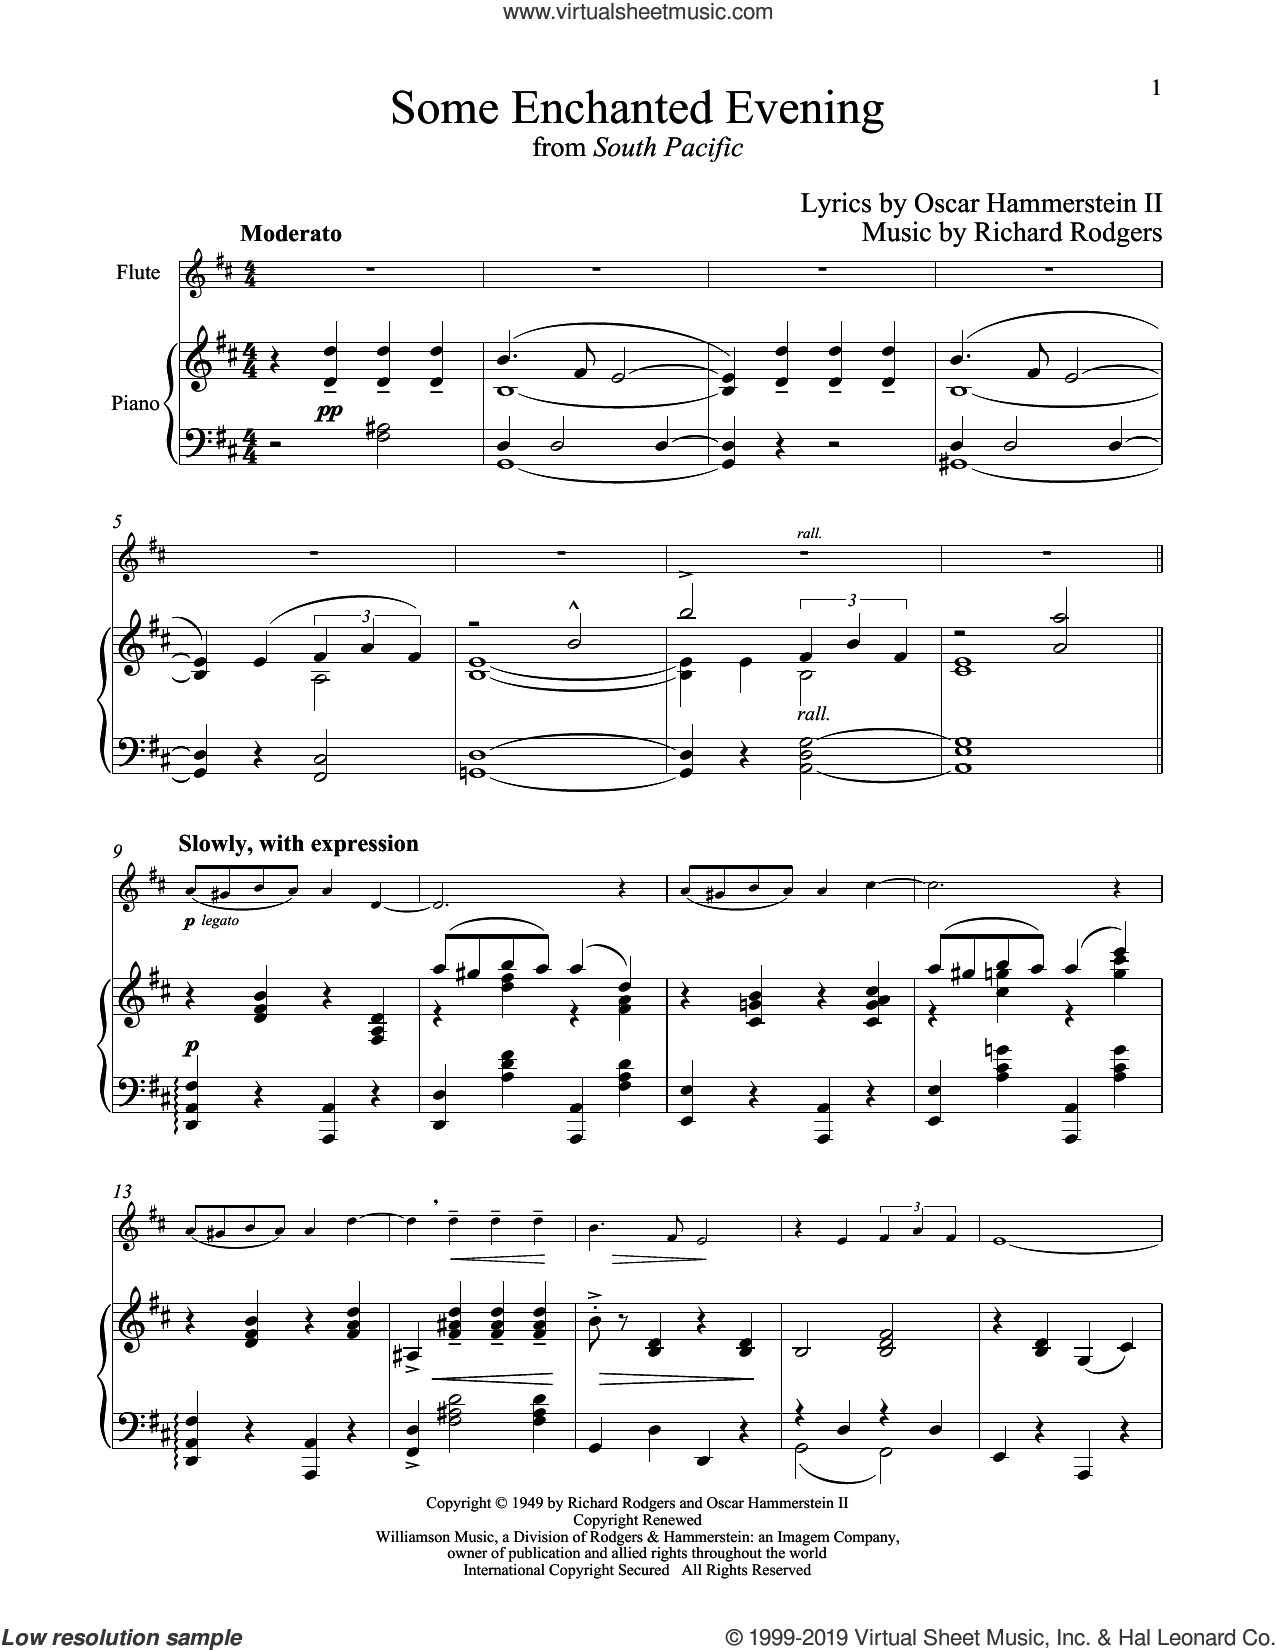 Some Enchanted Evening (from South Pacific) sheet music for flute and piano by Richard Rodgers and Oscar II Hammerstein, intermediate skill level